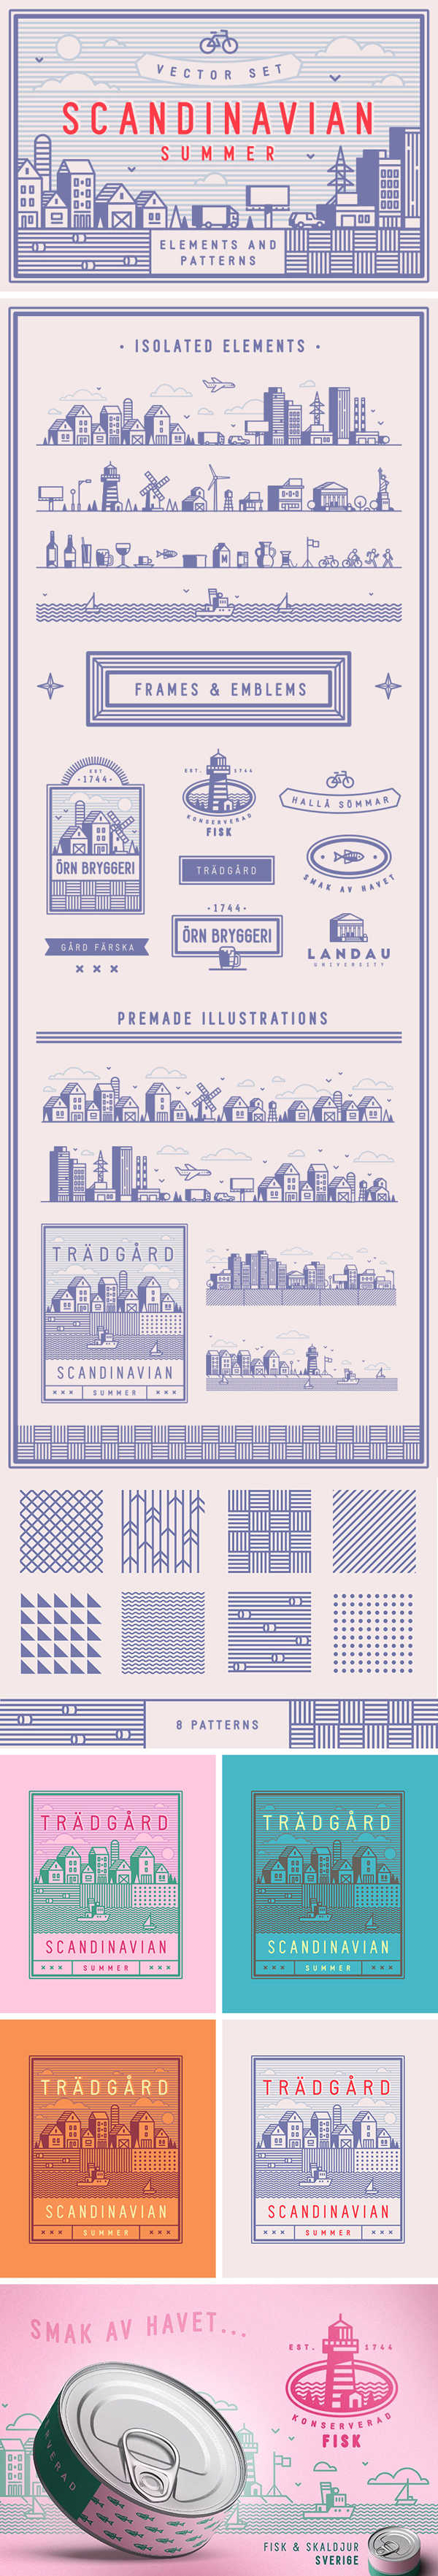 Free Scandinavian Summer Vector Set